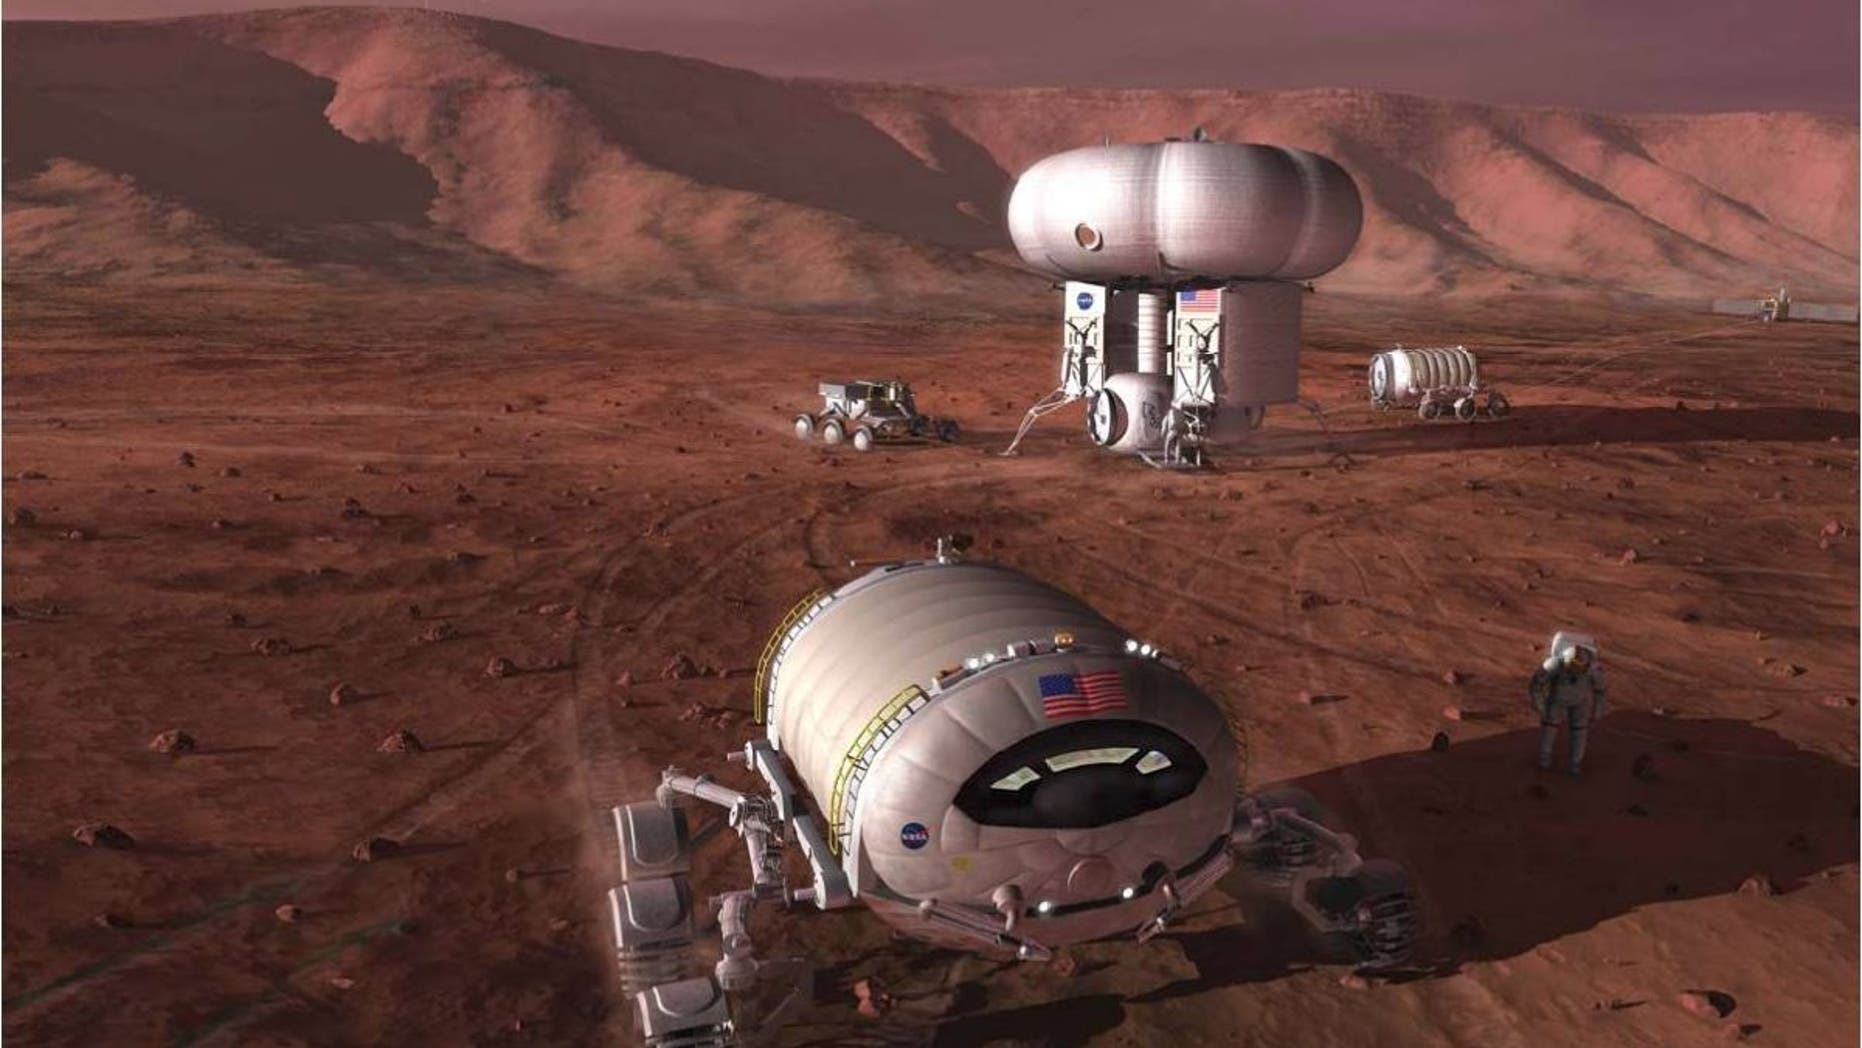 An artist's illustration of astronaut pioneers on Mars. Building a self-sustaining settlement on the Red Planet will require taking advantage of native Martian resources, exploration advocates stress.